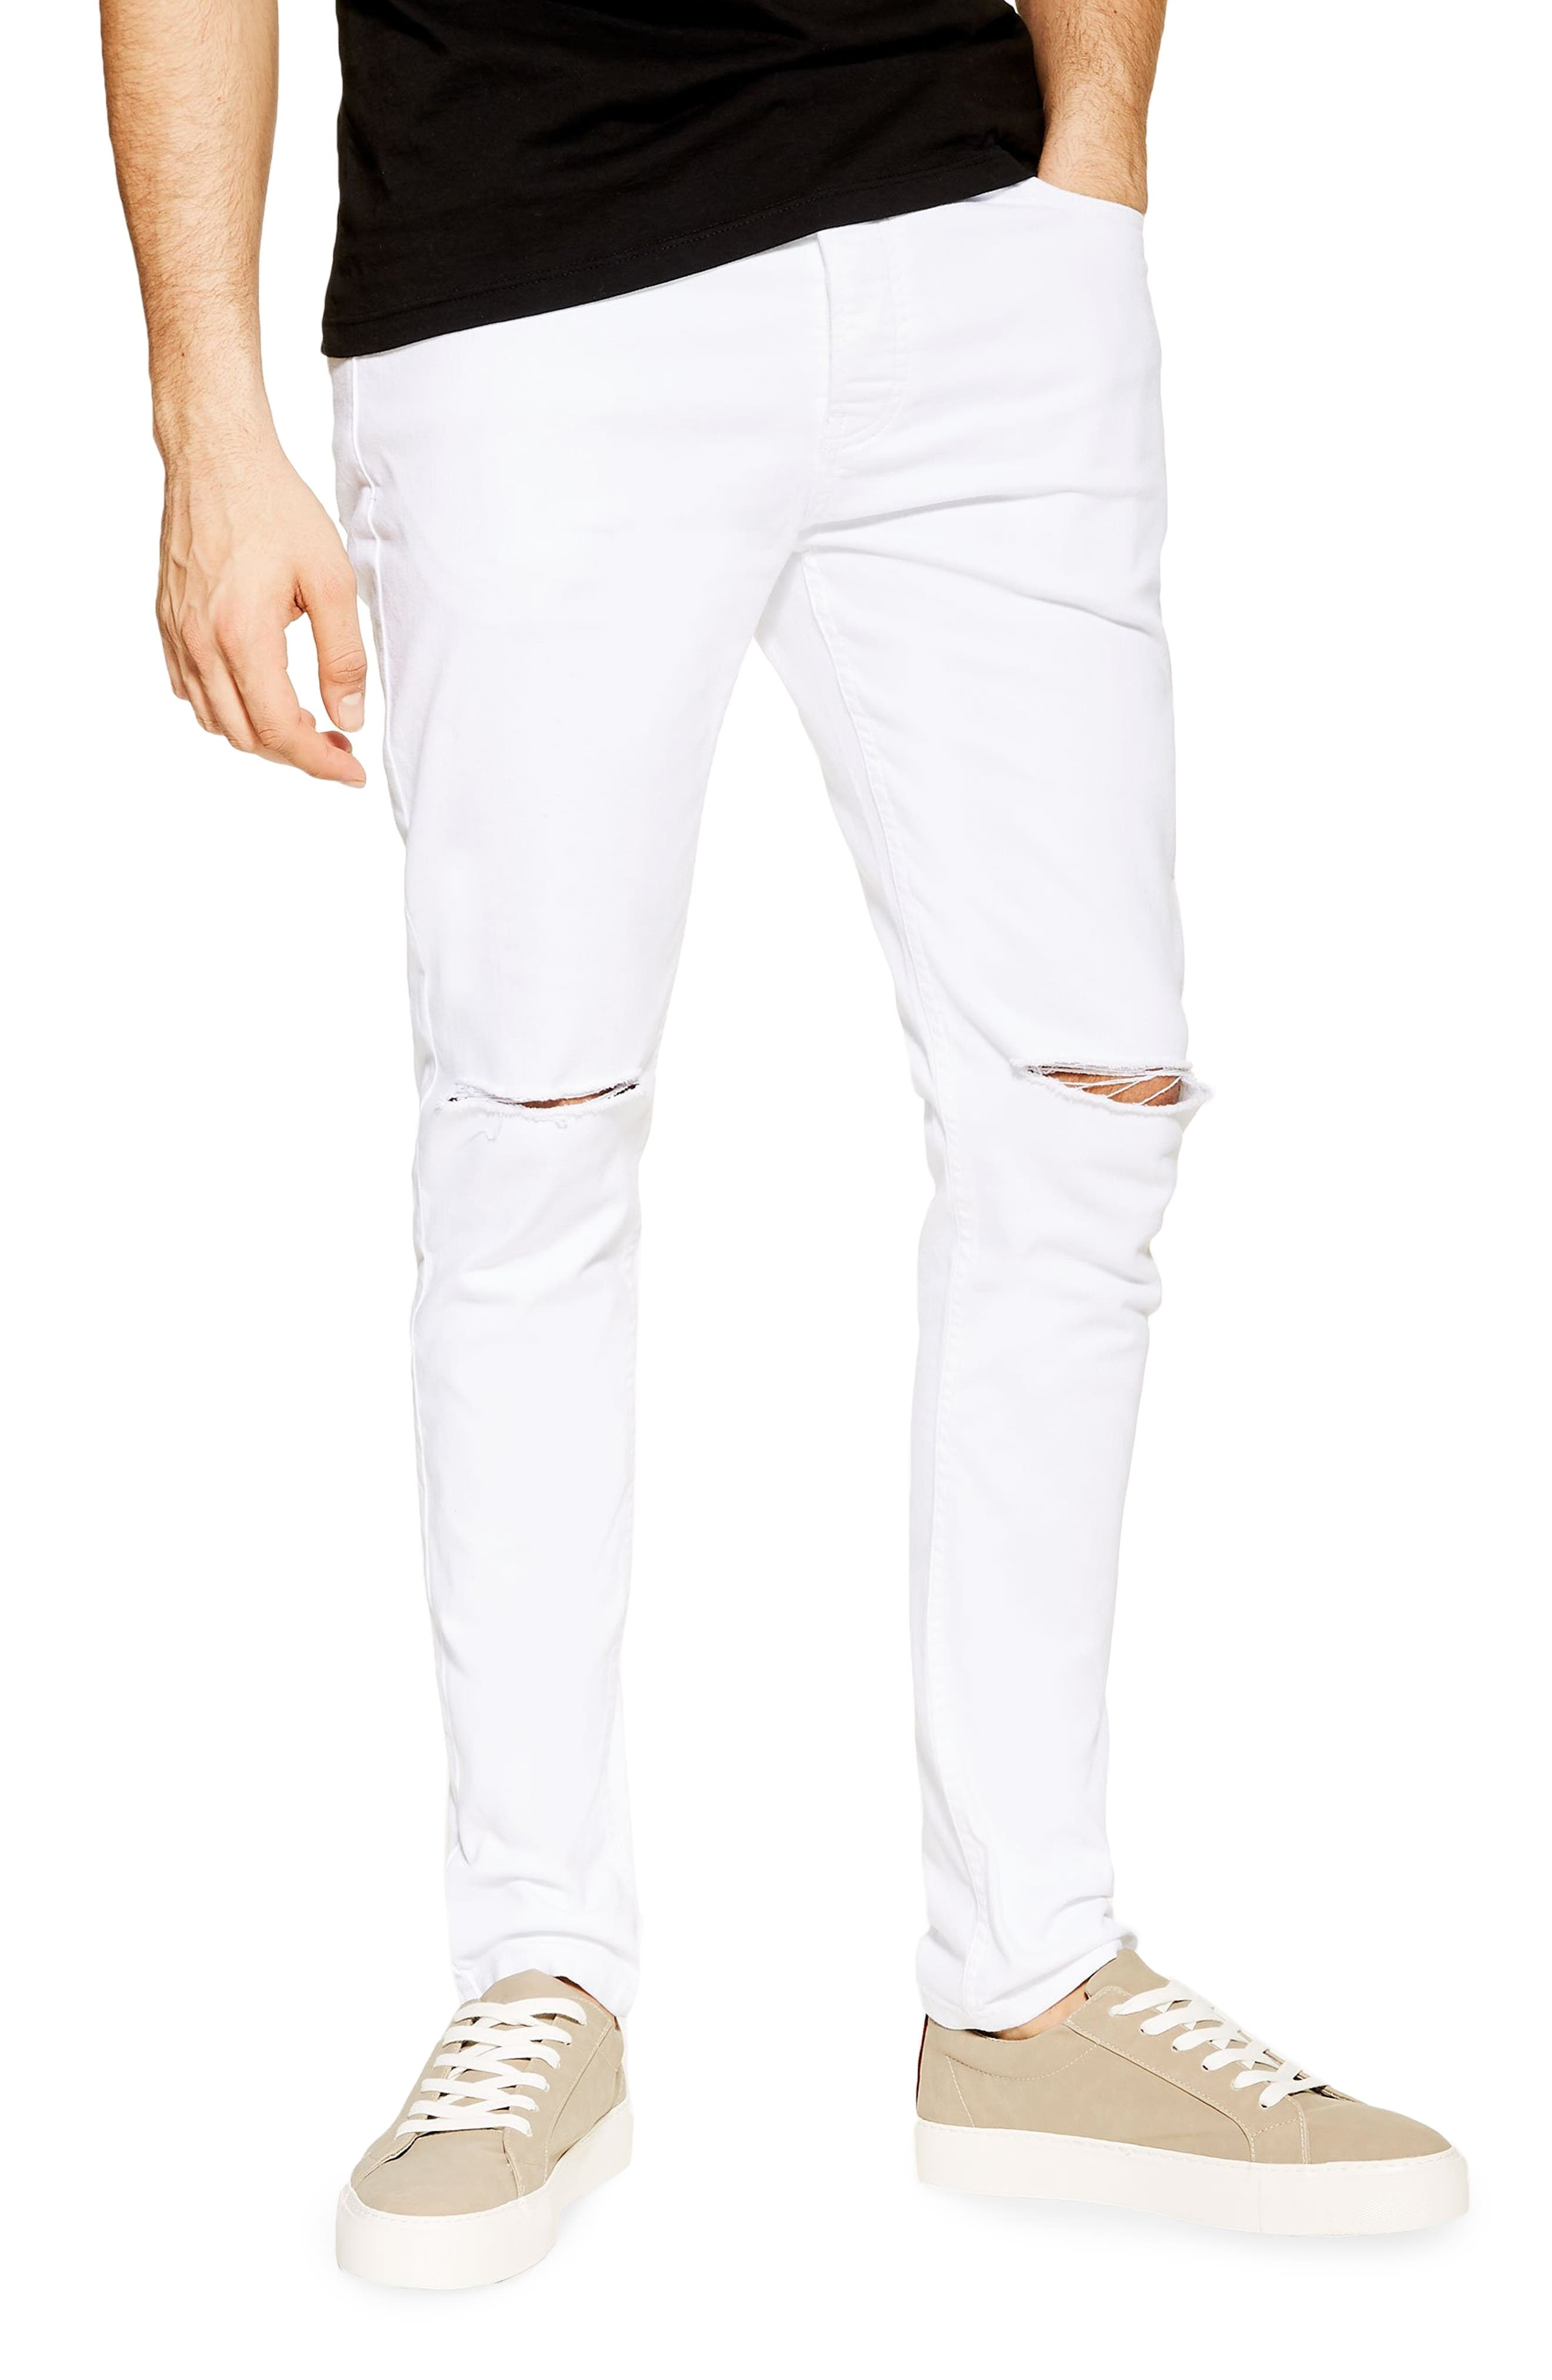 TOPMAN Ripped Stretch Skinny Fit Jeans, Main, color, WHITE